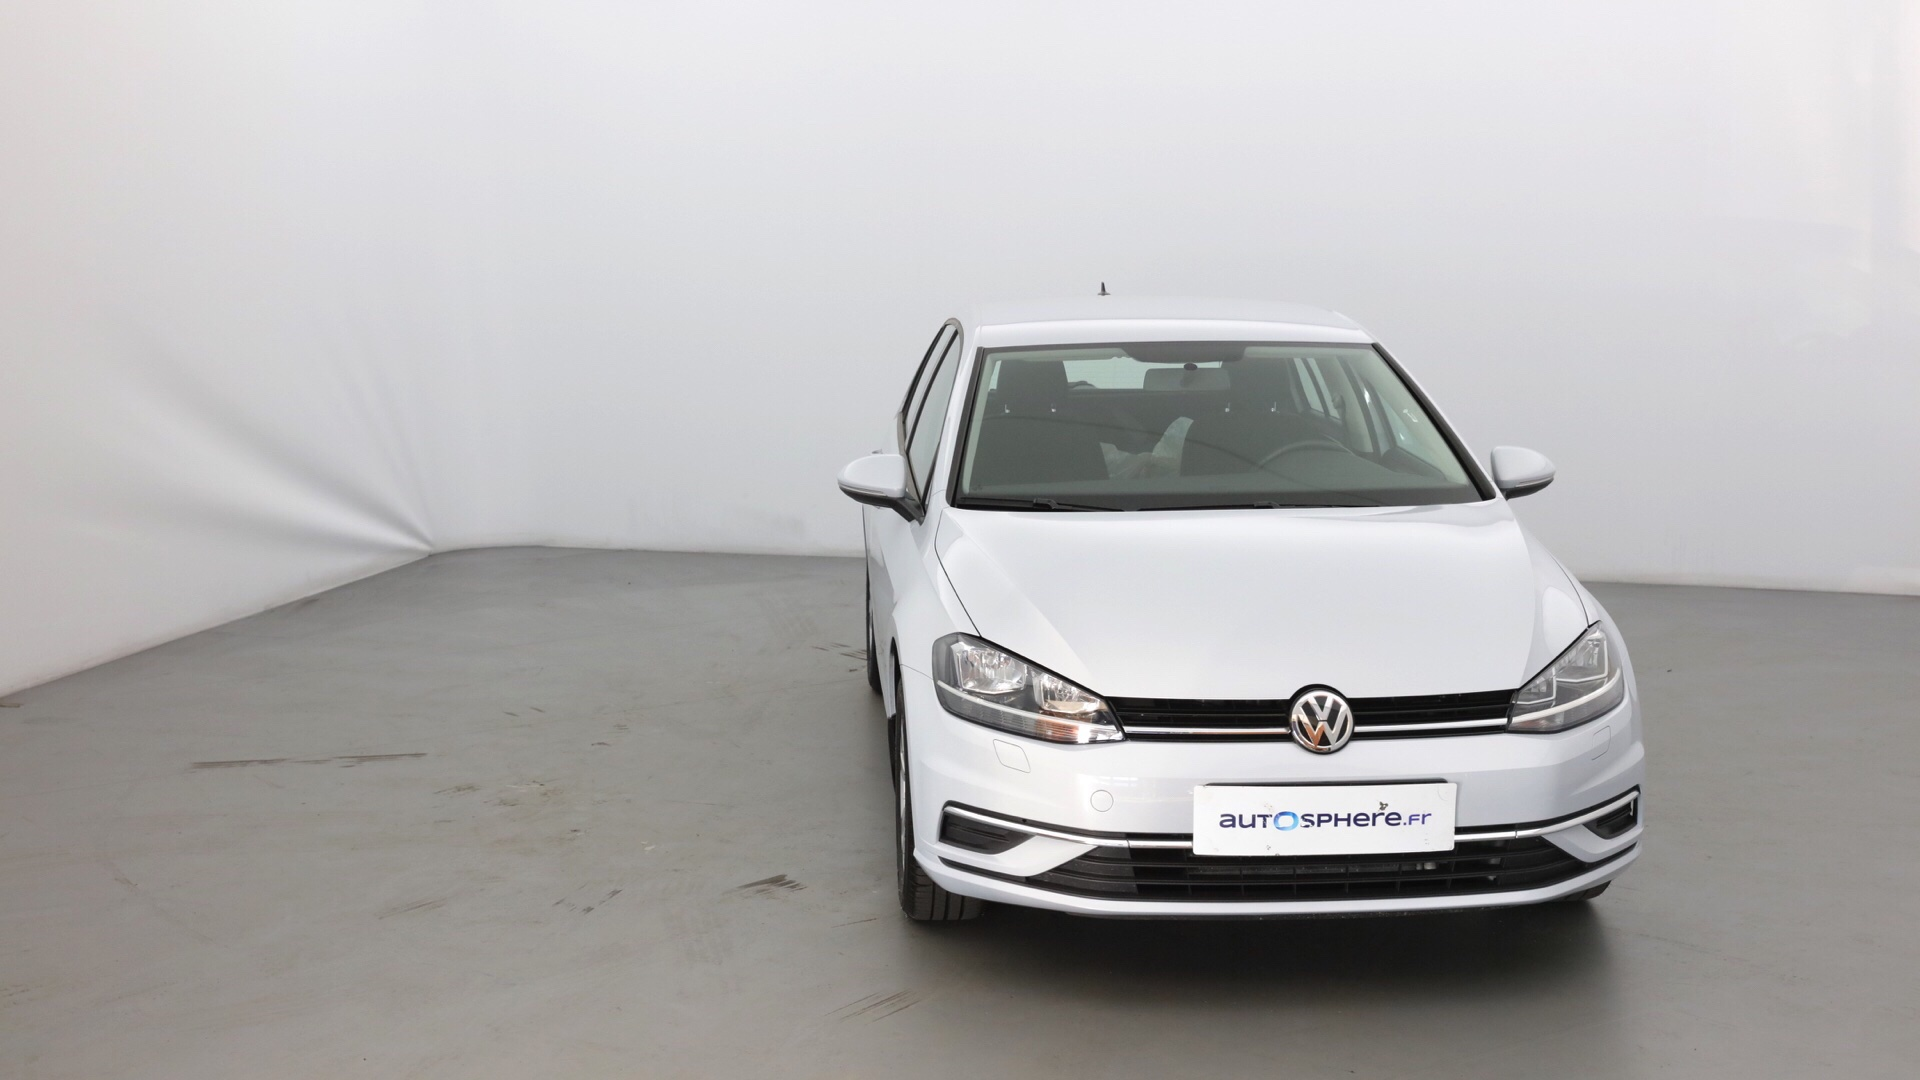 VOLKSWAGEN GOLF 1.0 TSI 110CH BLUEMOTION TECHNOLOGY TRENDLINE 5P - Miniature 2